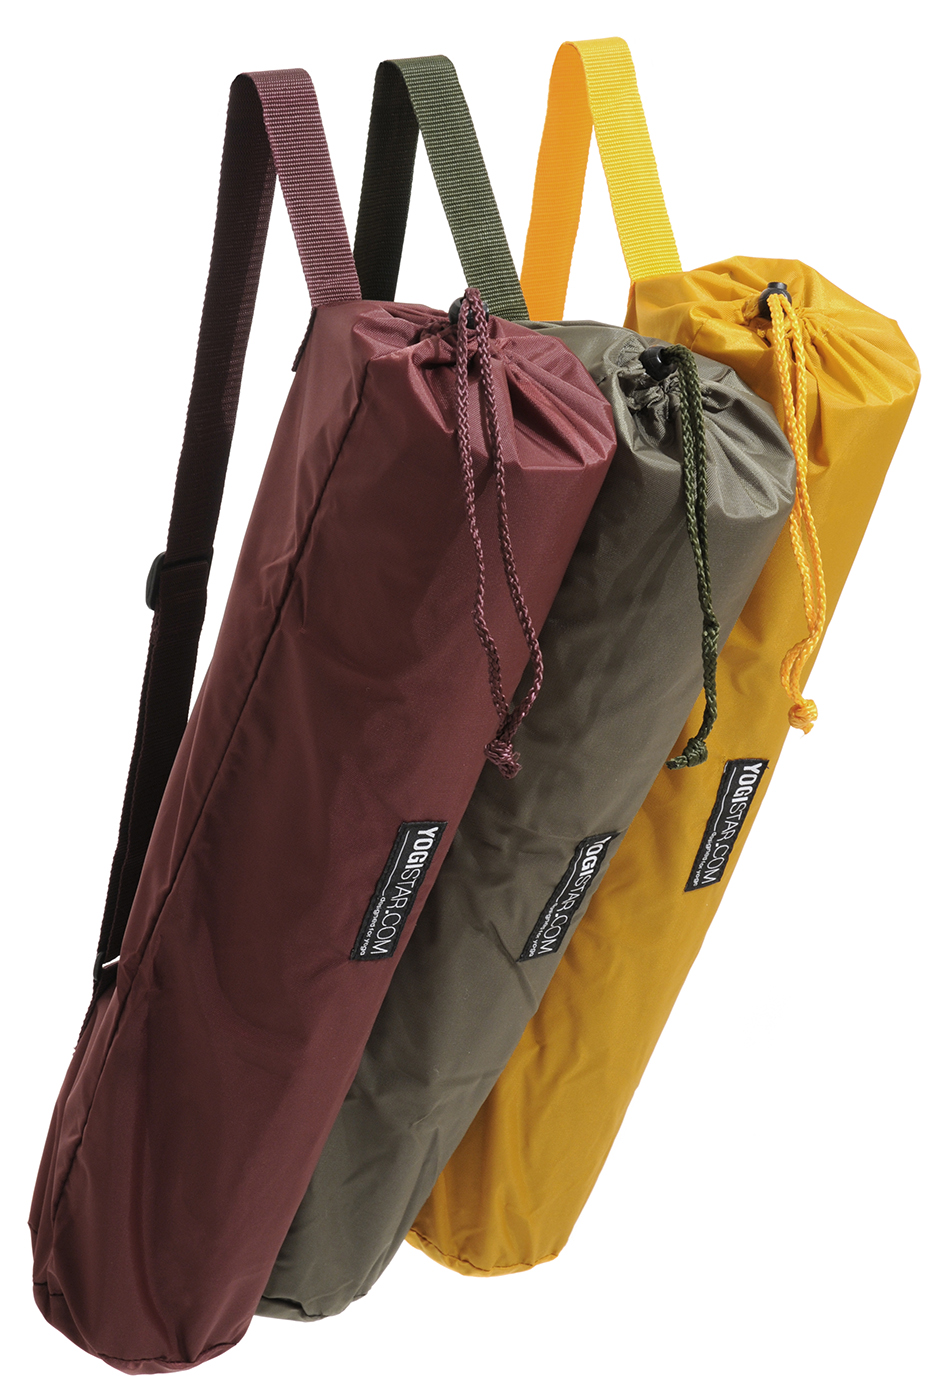 Yoga carrybag basic - nylon - 65 cm